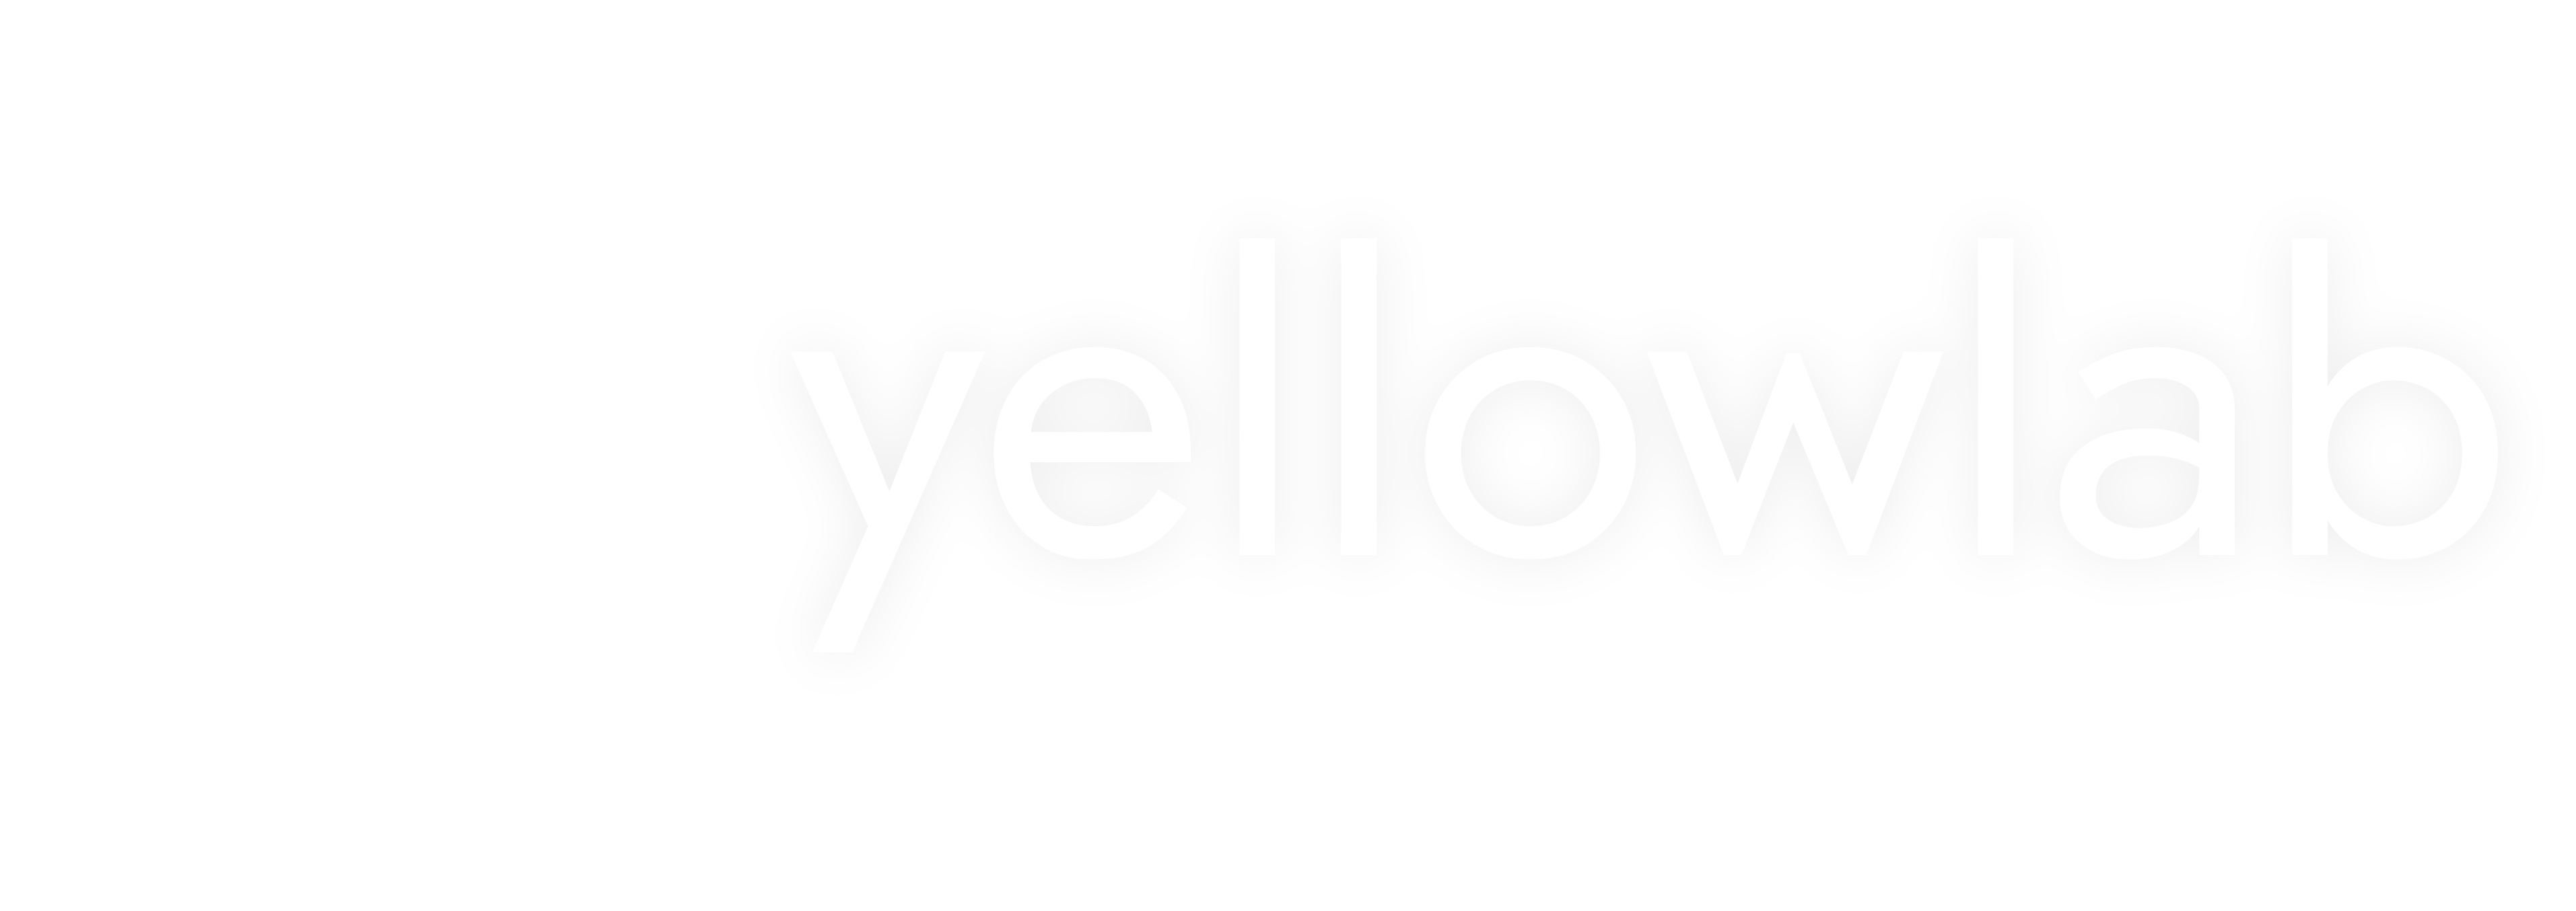 logo yellow lab, yellowlab.it